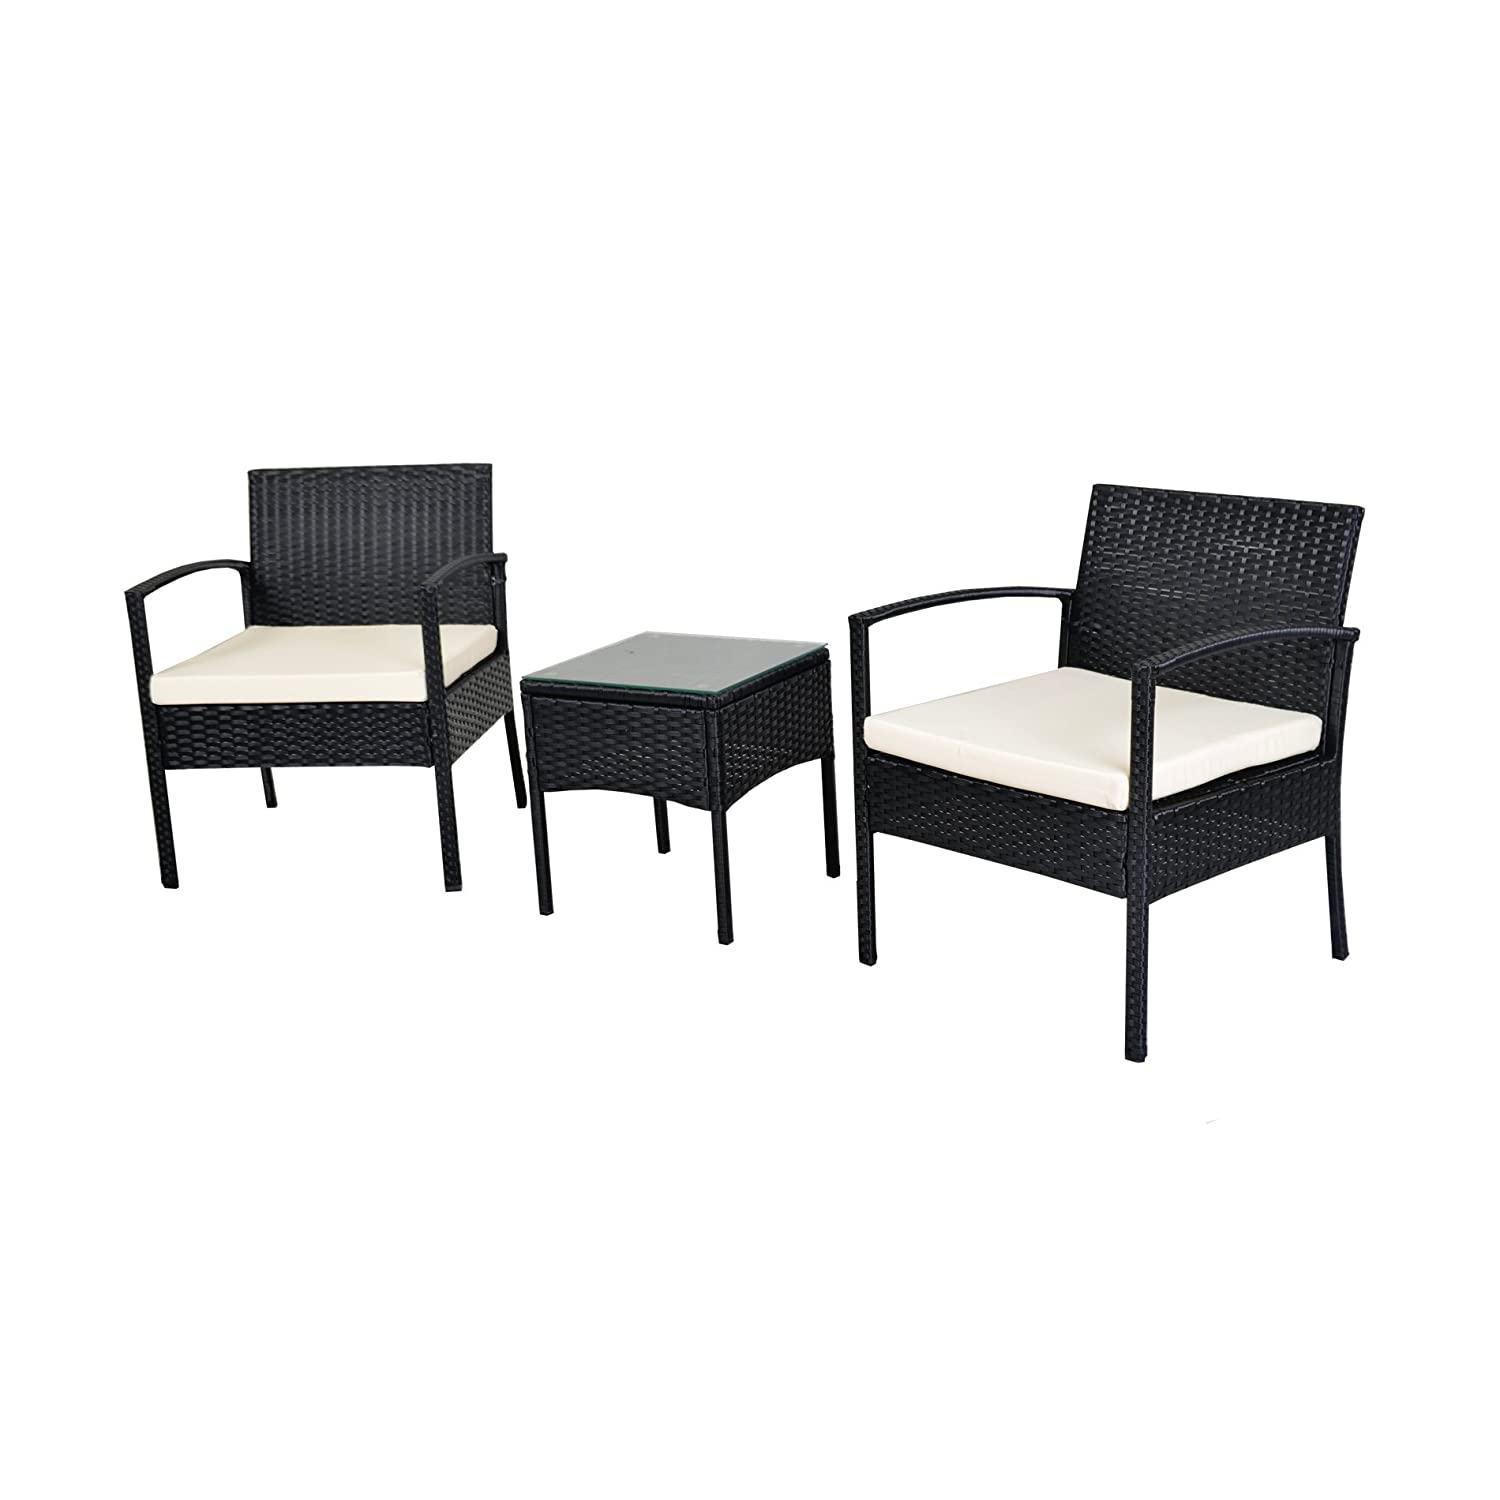 ebs polyrattan gartenm bel set gartengarnitur sitzgruppe lounge garnitur 1 tisch 2 st hle wei. Black Bedroom Furniture Sets. Home Design Ideas